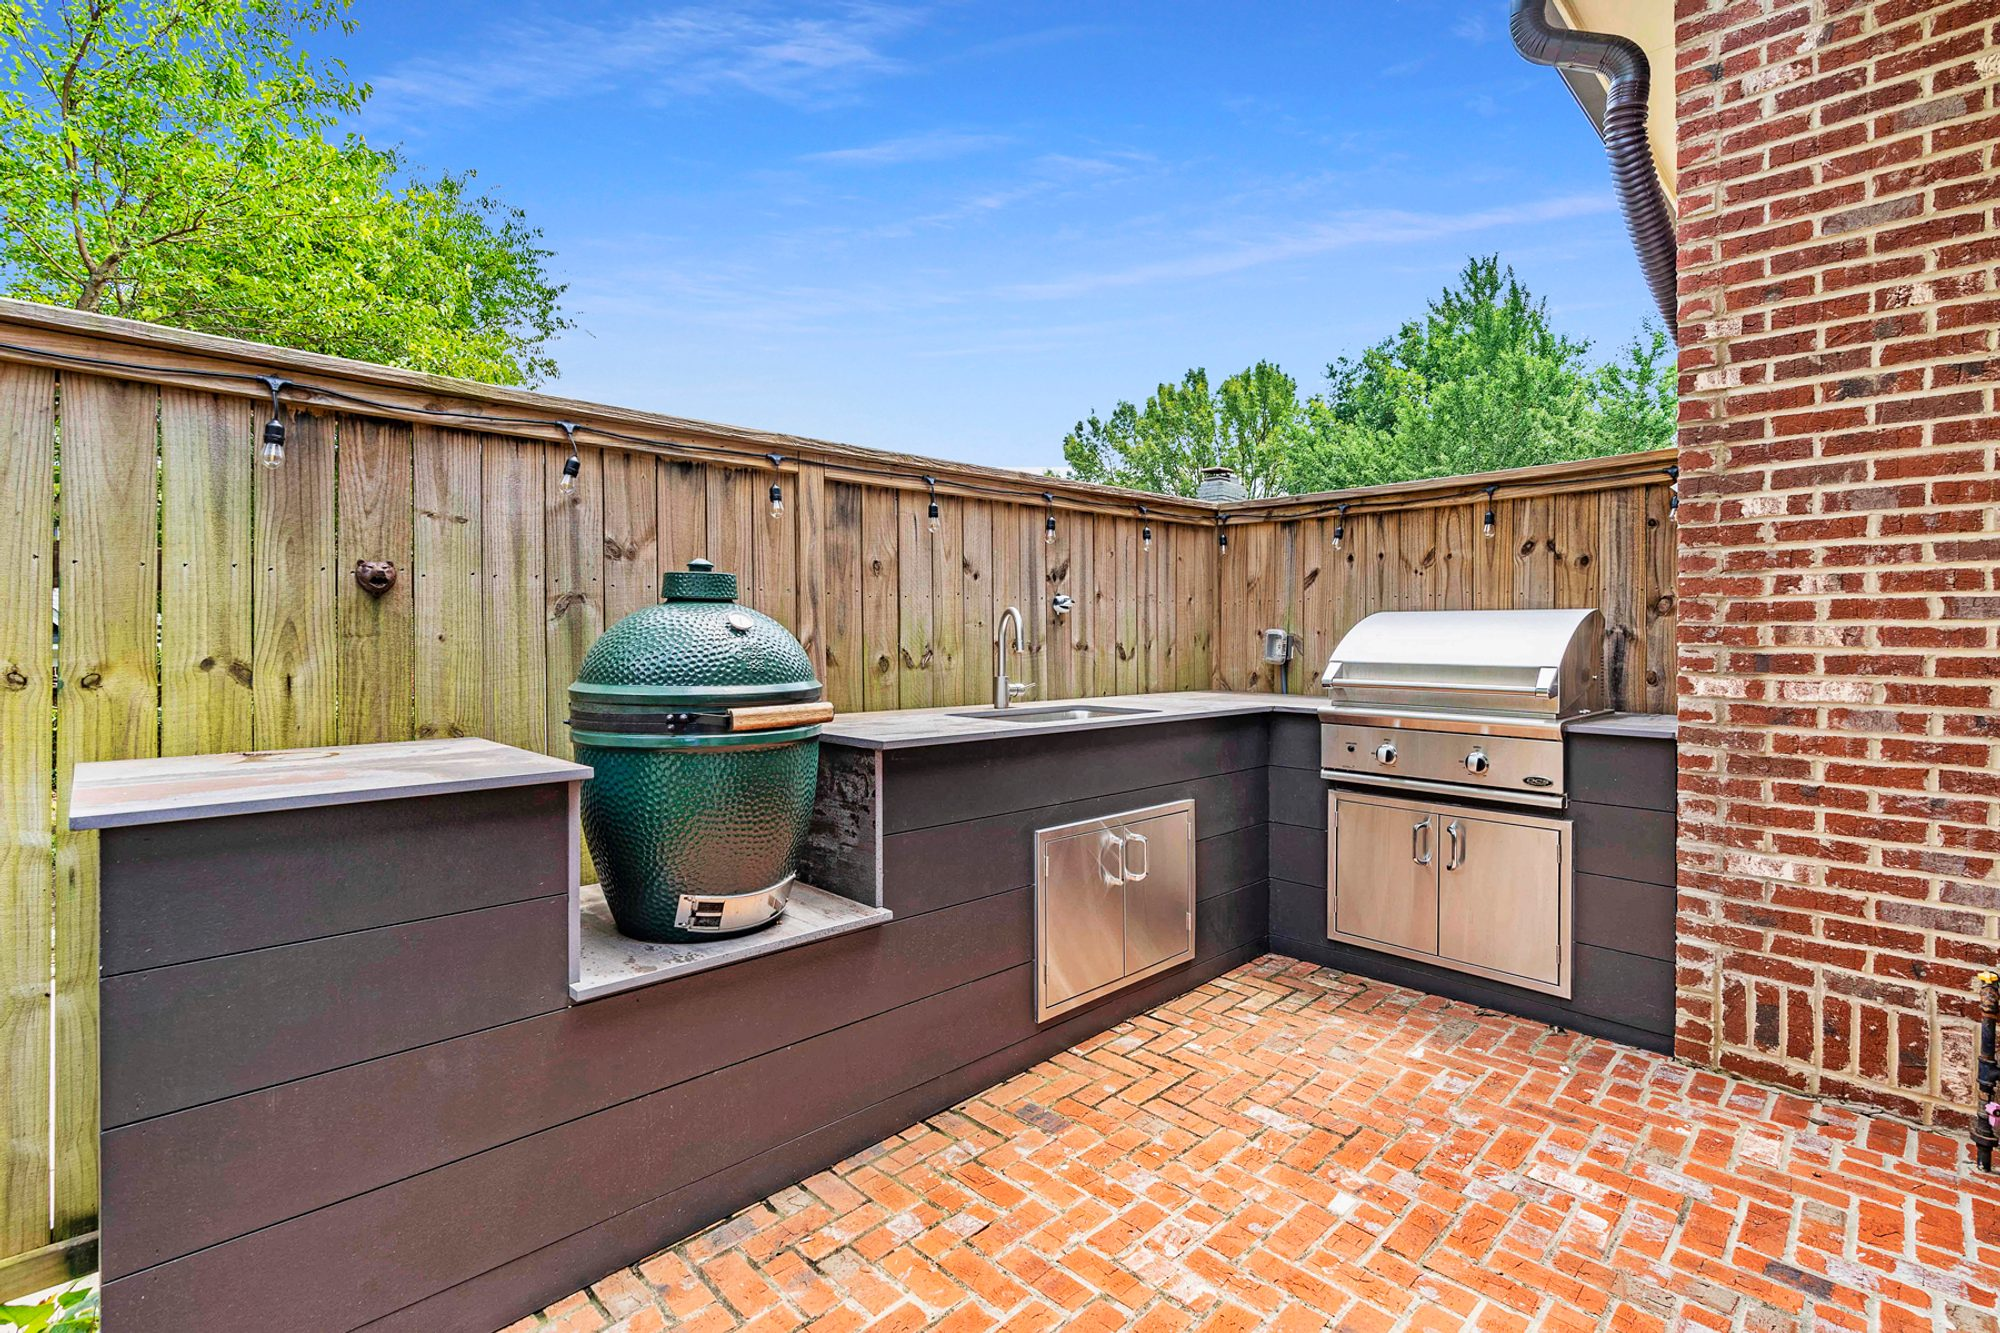 Red brick herringbone patio design with an outdoor kitchen.